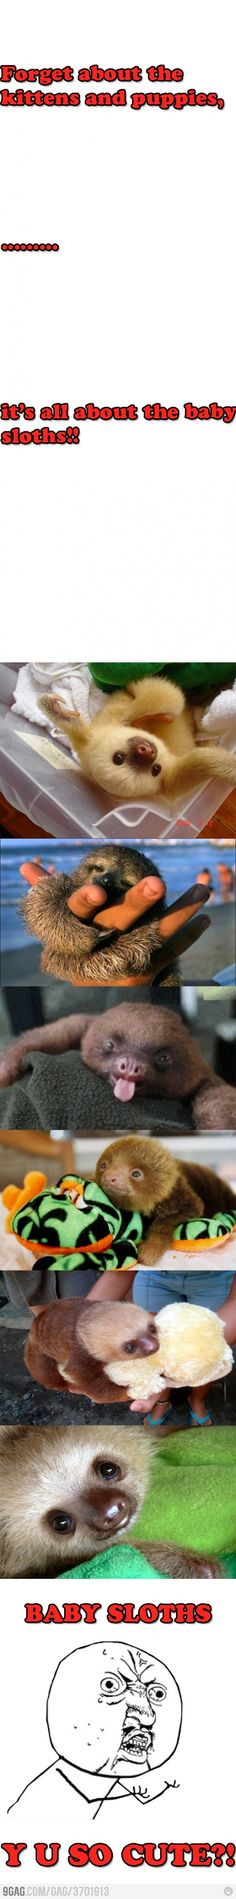 Baby sloths are awesome!